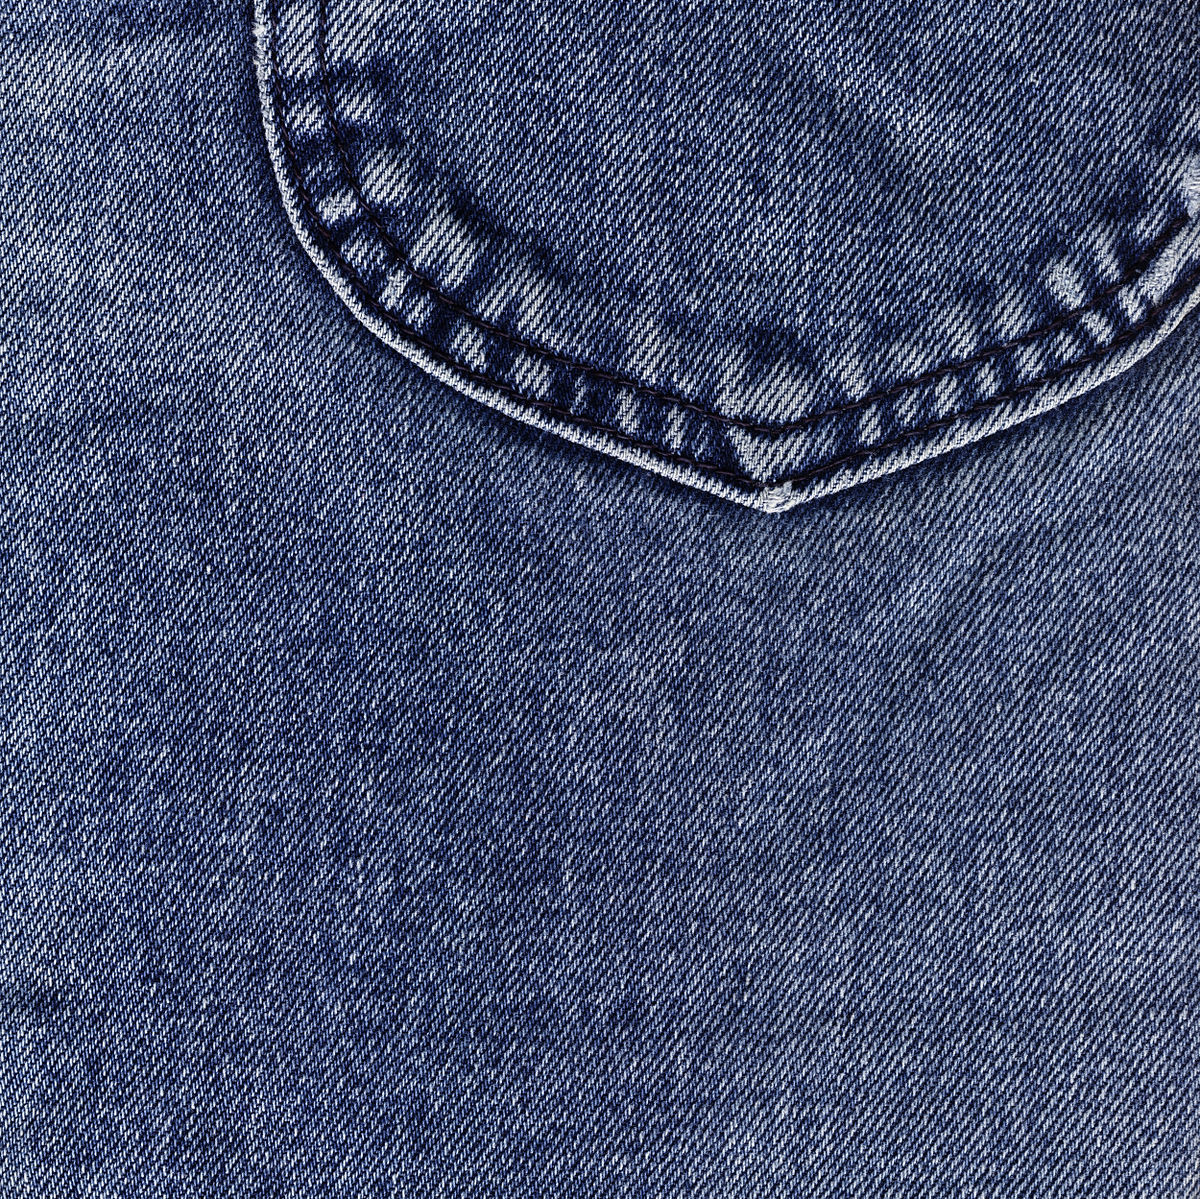 Denim - Wikipedia